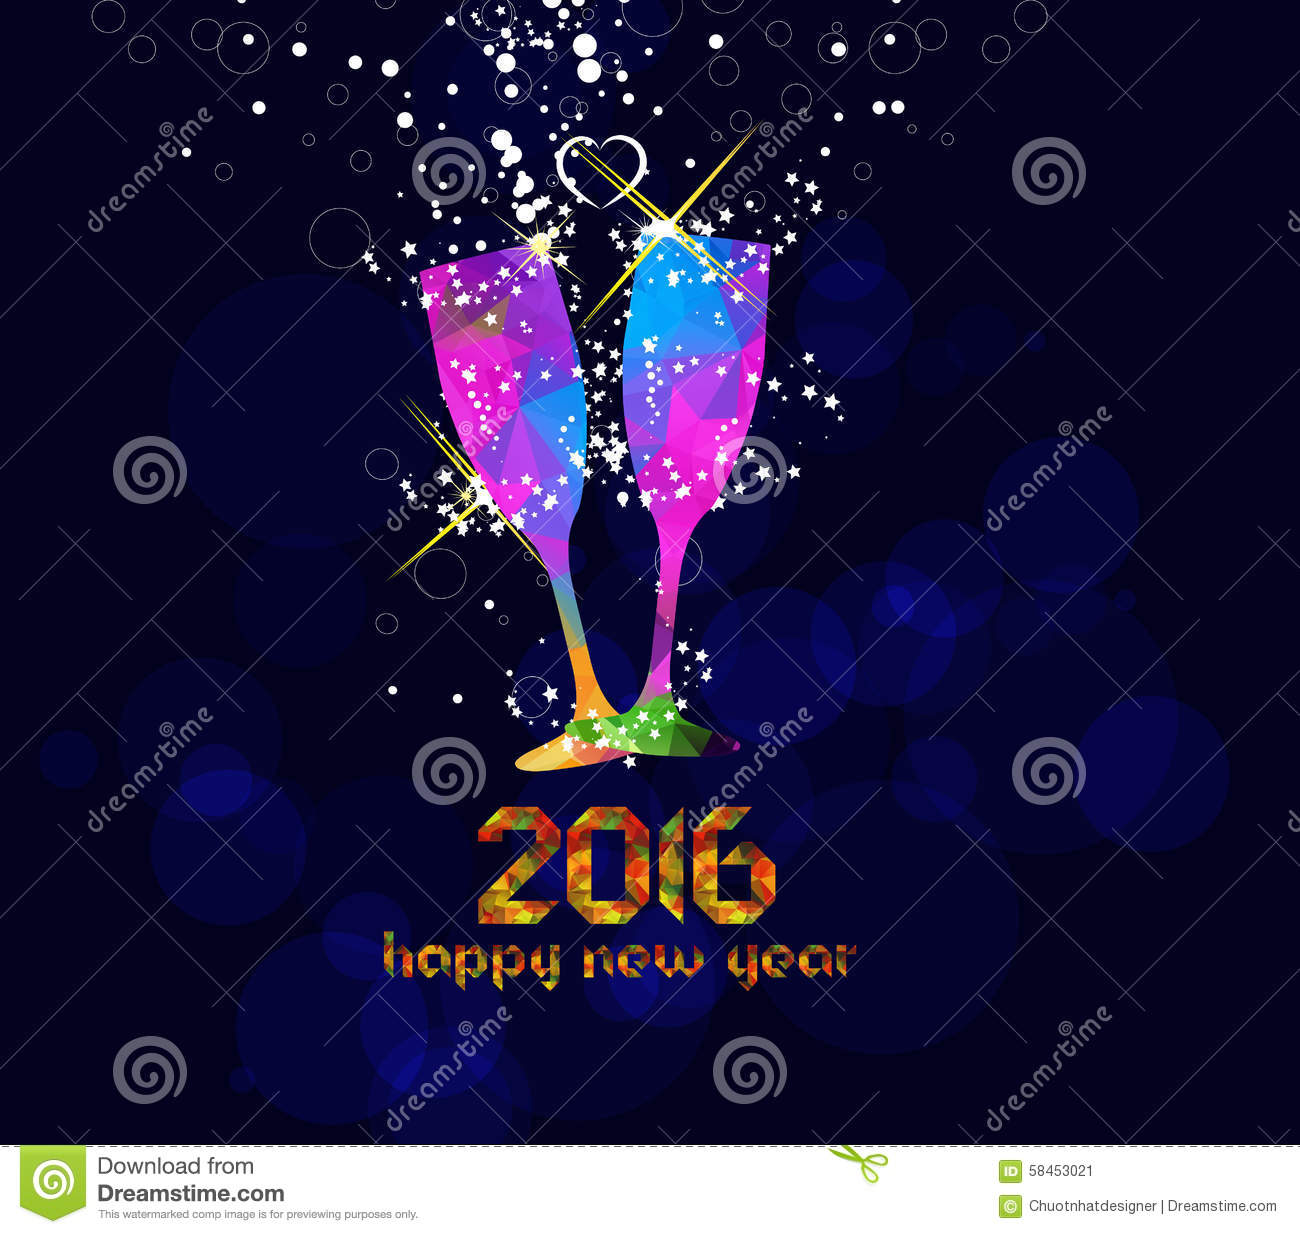 happy new year 2016 greeting card or poster design with colorful